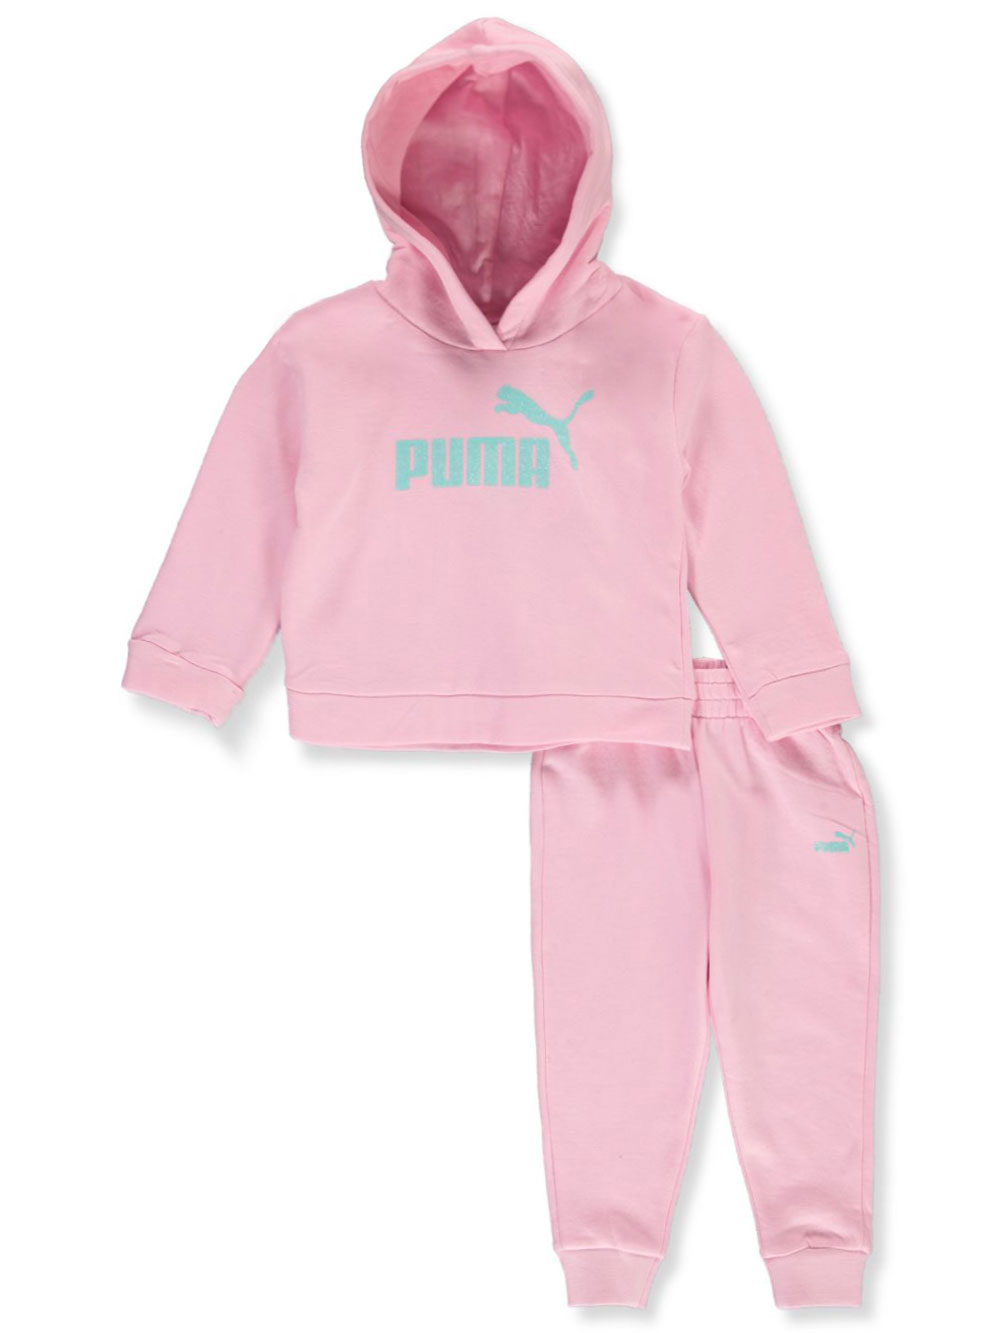 Classic Logo 2-Piece Sweatsuit Outfit